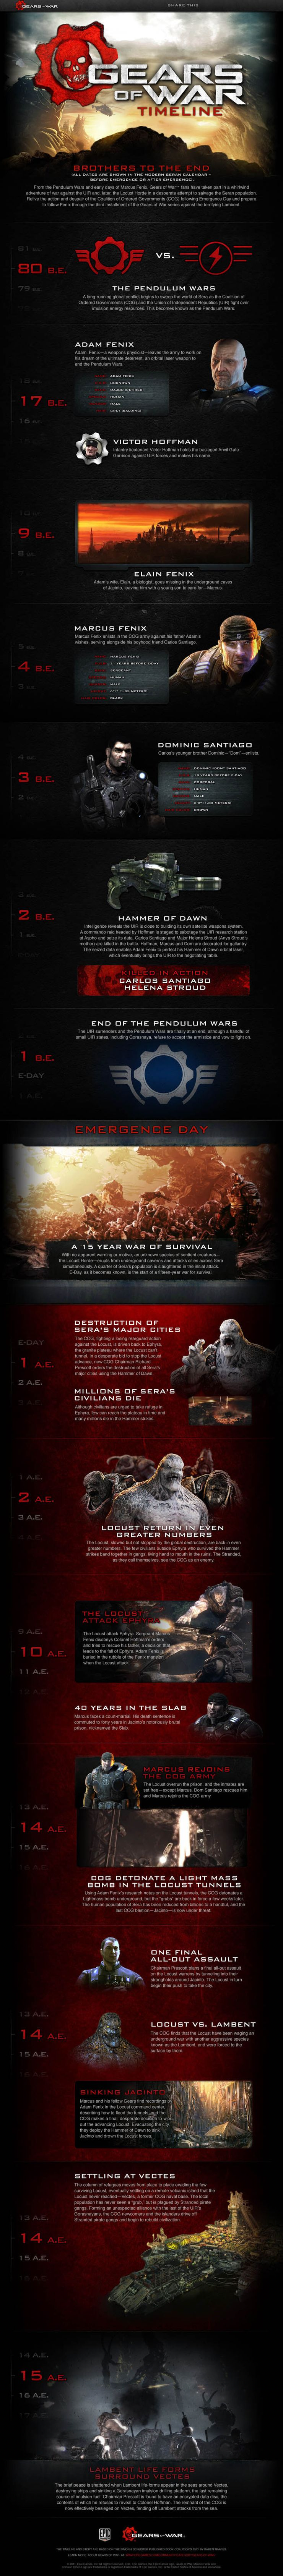 The Official Gears Of War Timeline Infographic Game Rant